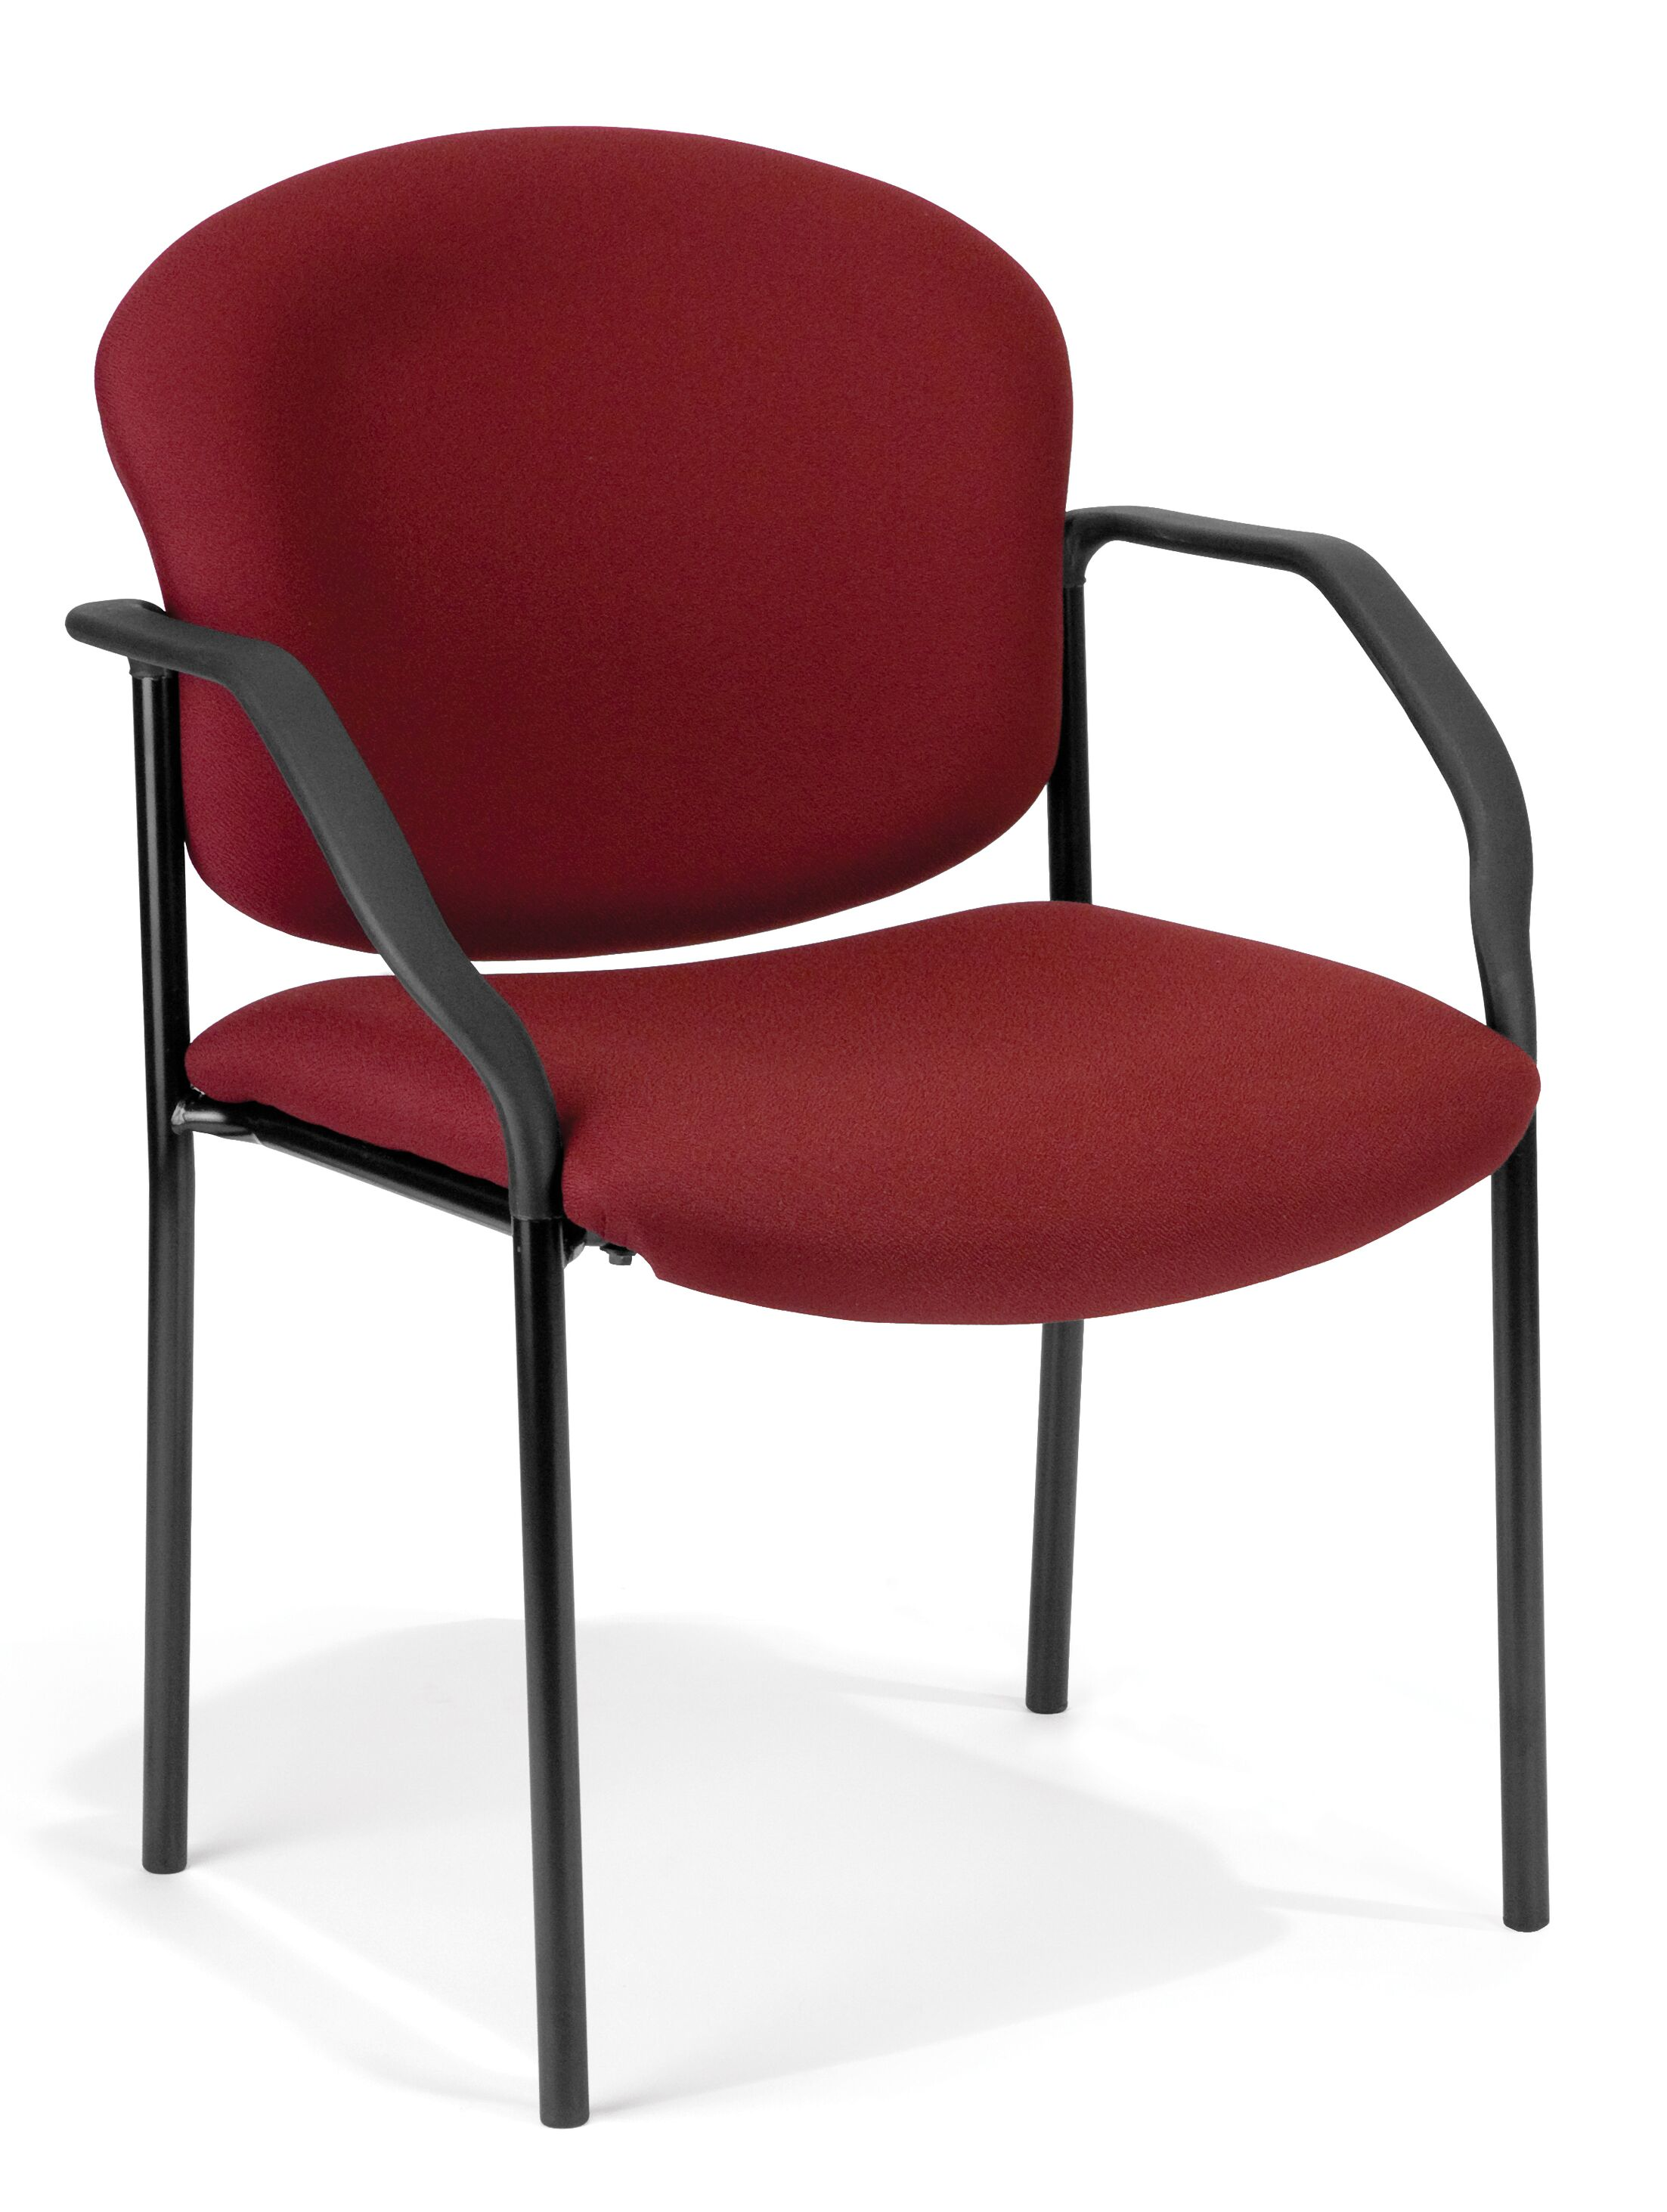 Manor Series Deluxe Upholstered Stacking Guest Chair Seat Finish: Fabric/Wine